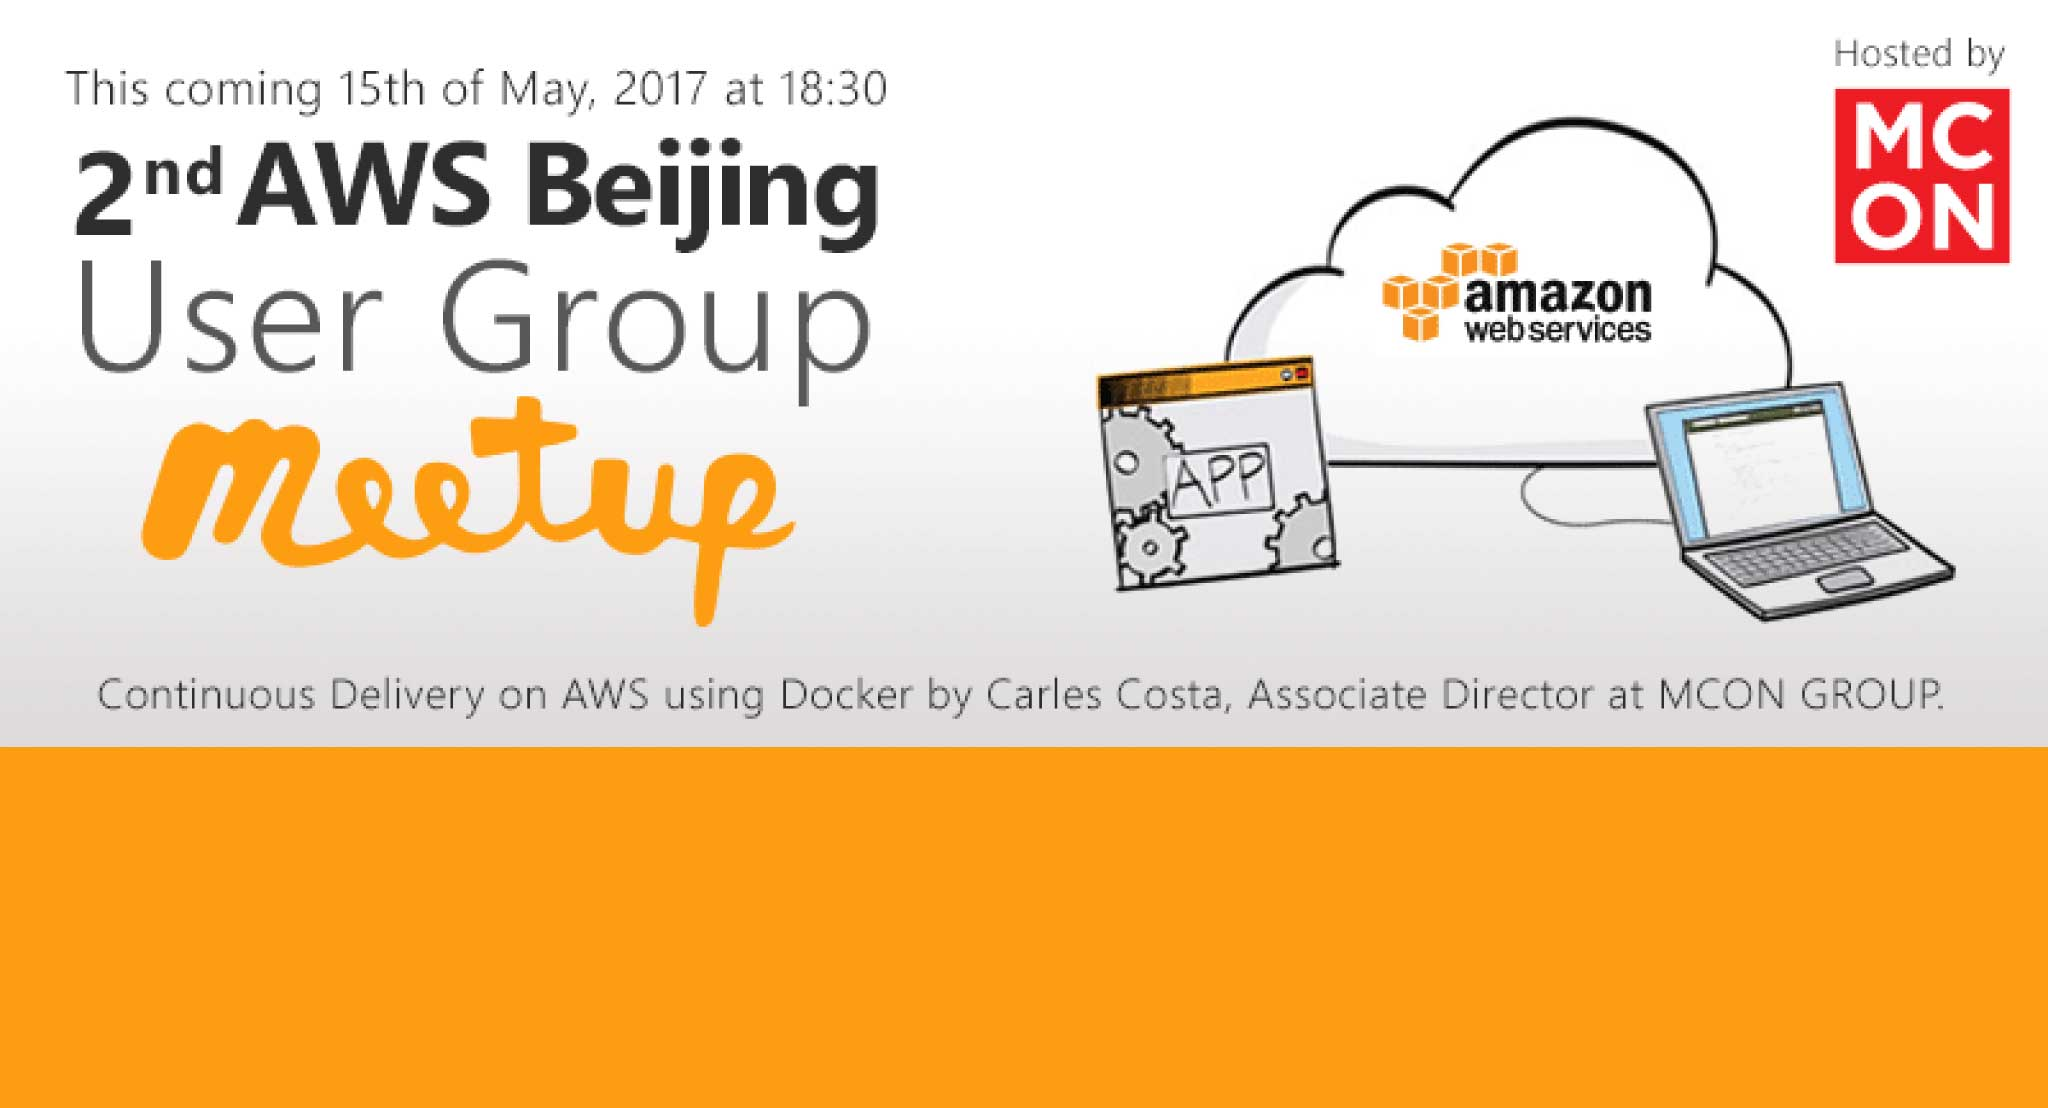 Image of 2nd AWS Beijing User Group Meeting